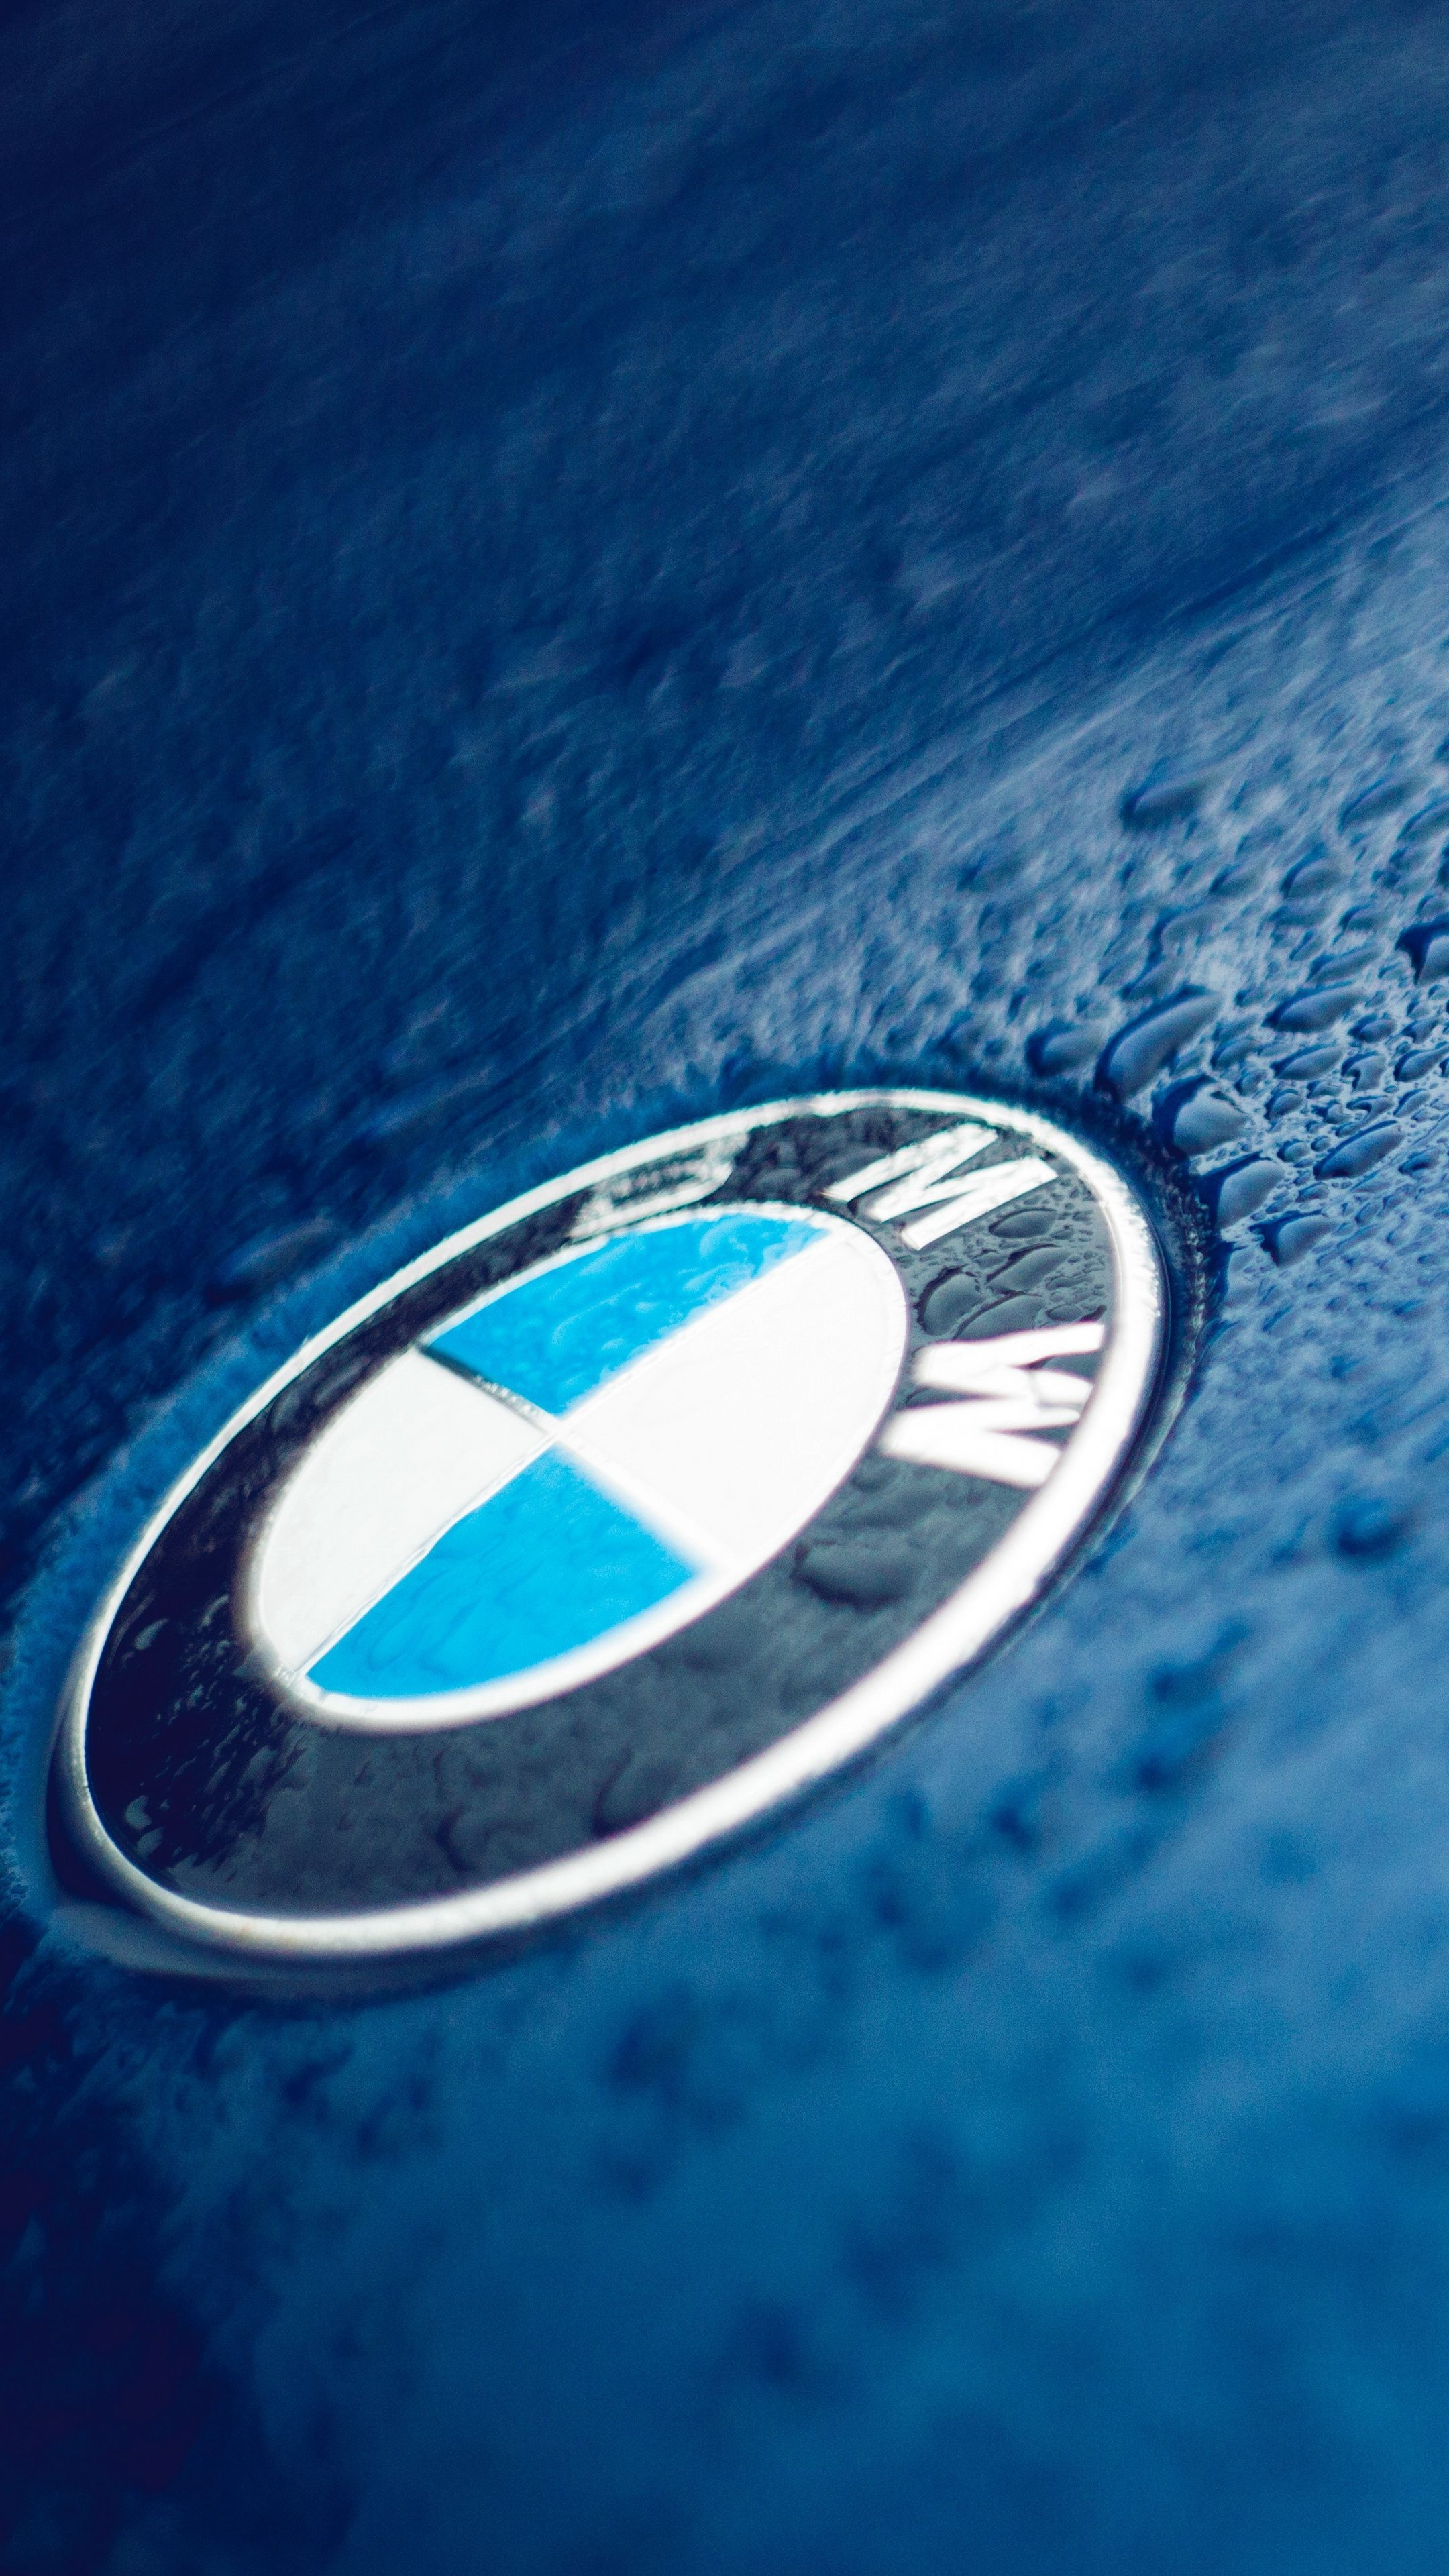 Bmw Logo Hd Phone Wallpapers Top Free Bmw Logo Hd Phone Backgrounds Wallpaperaccess